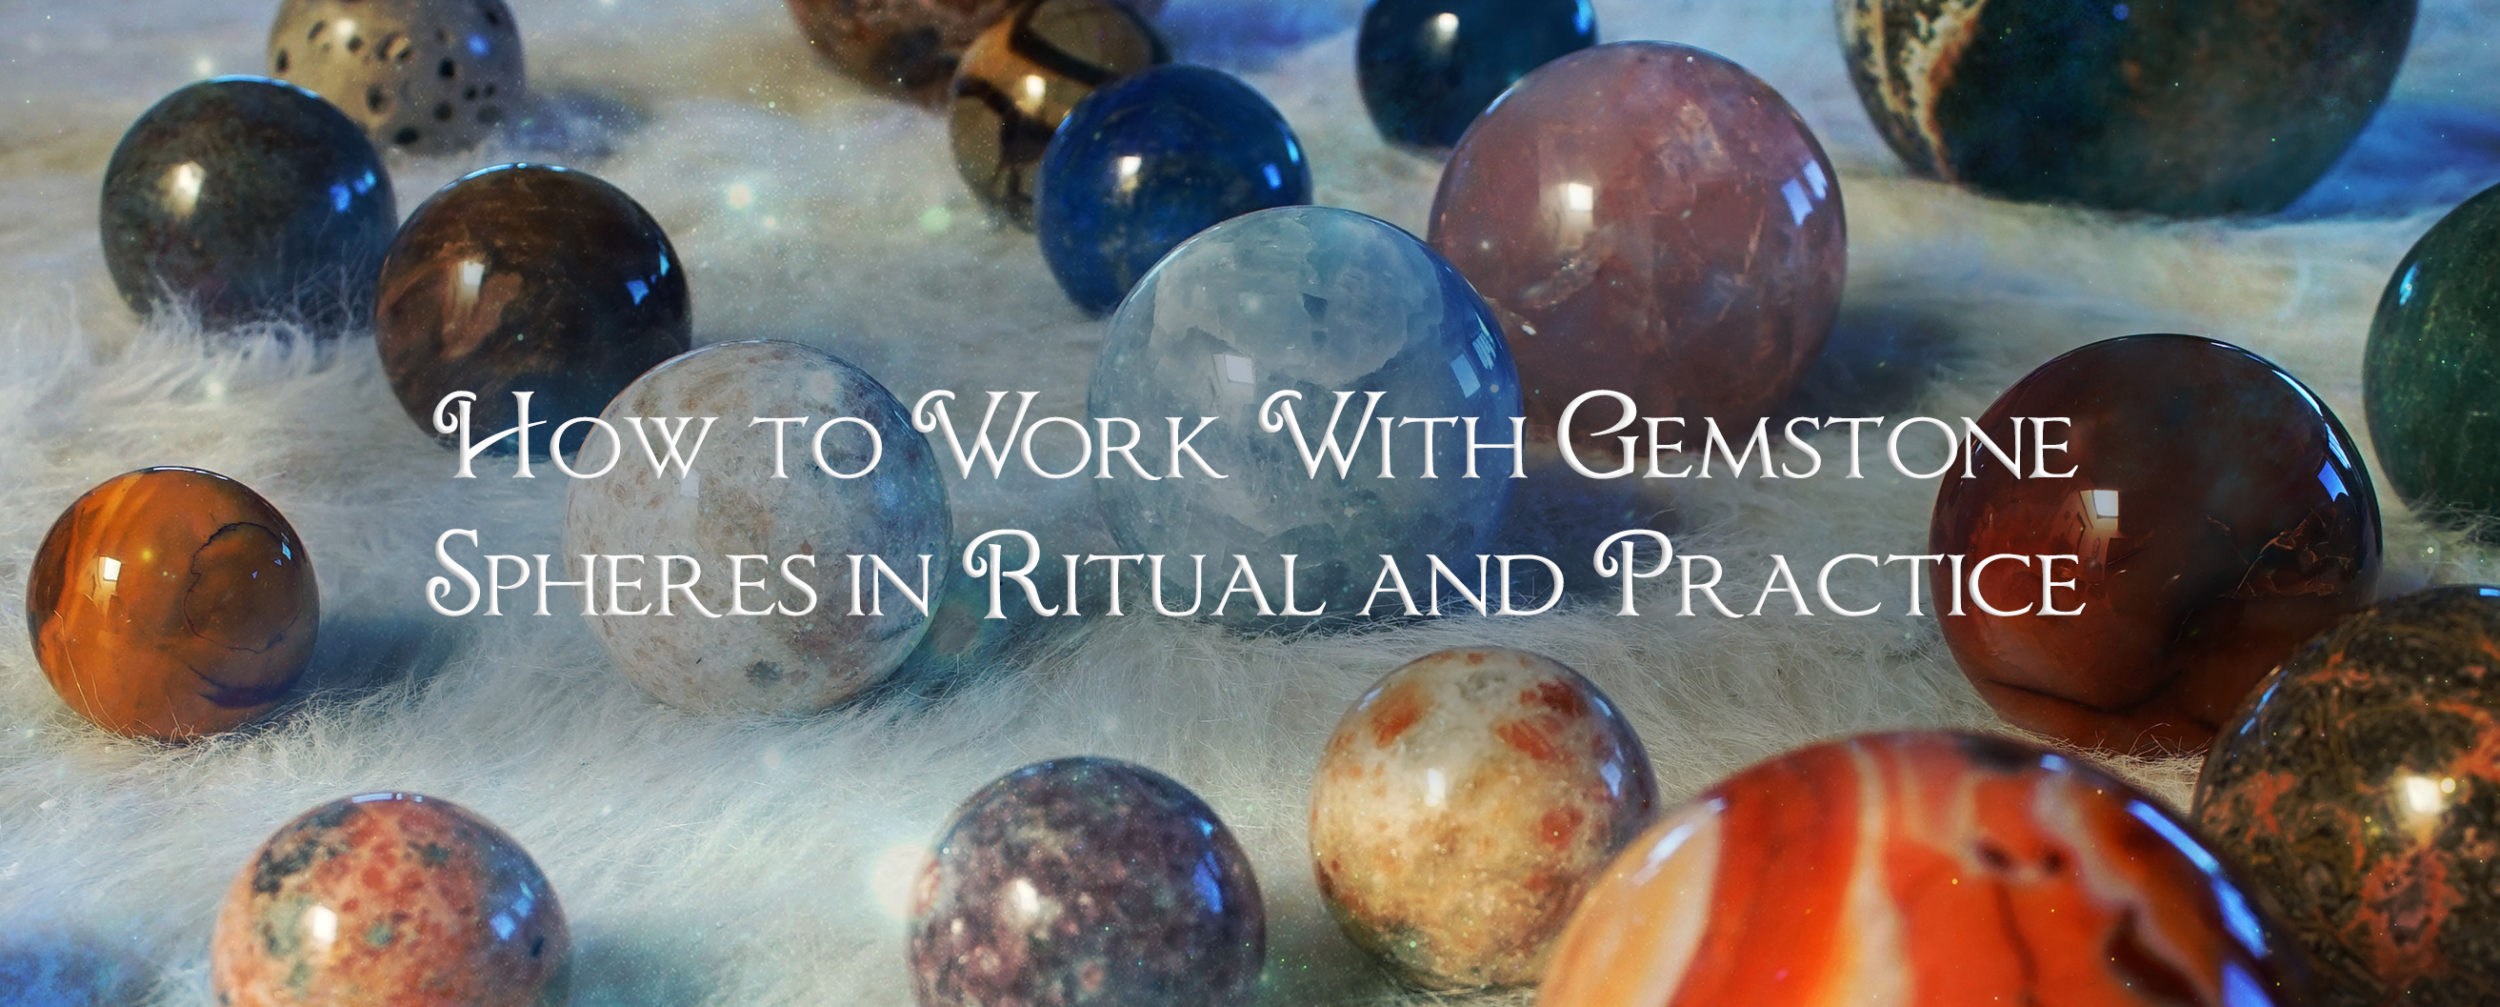 How to work with gemstone spheres